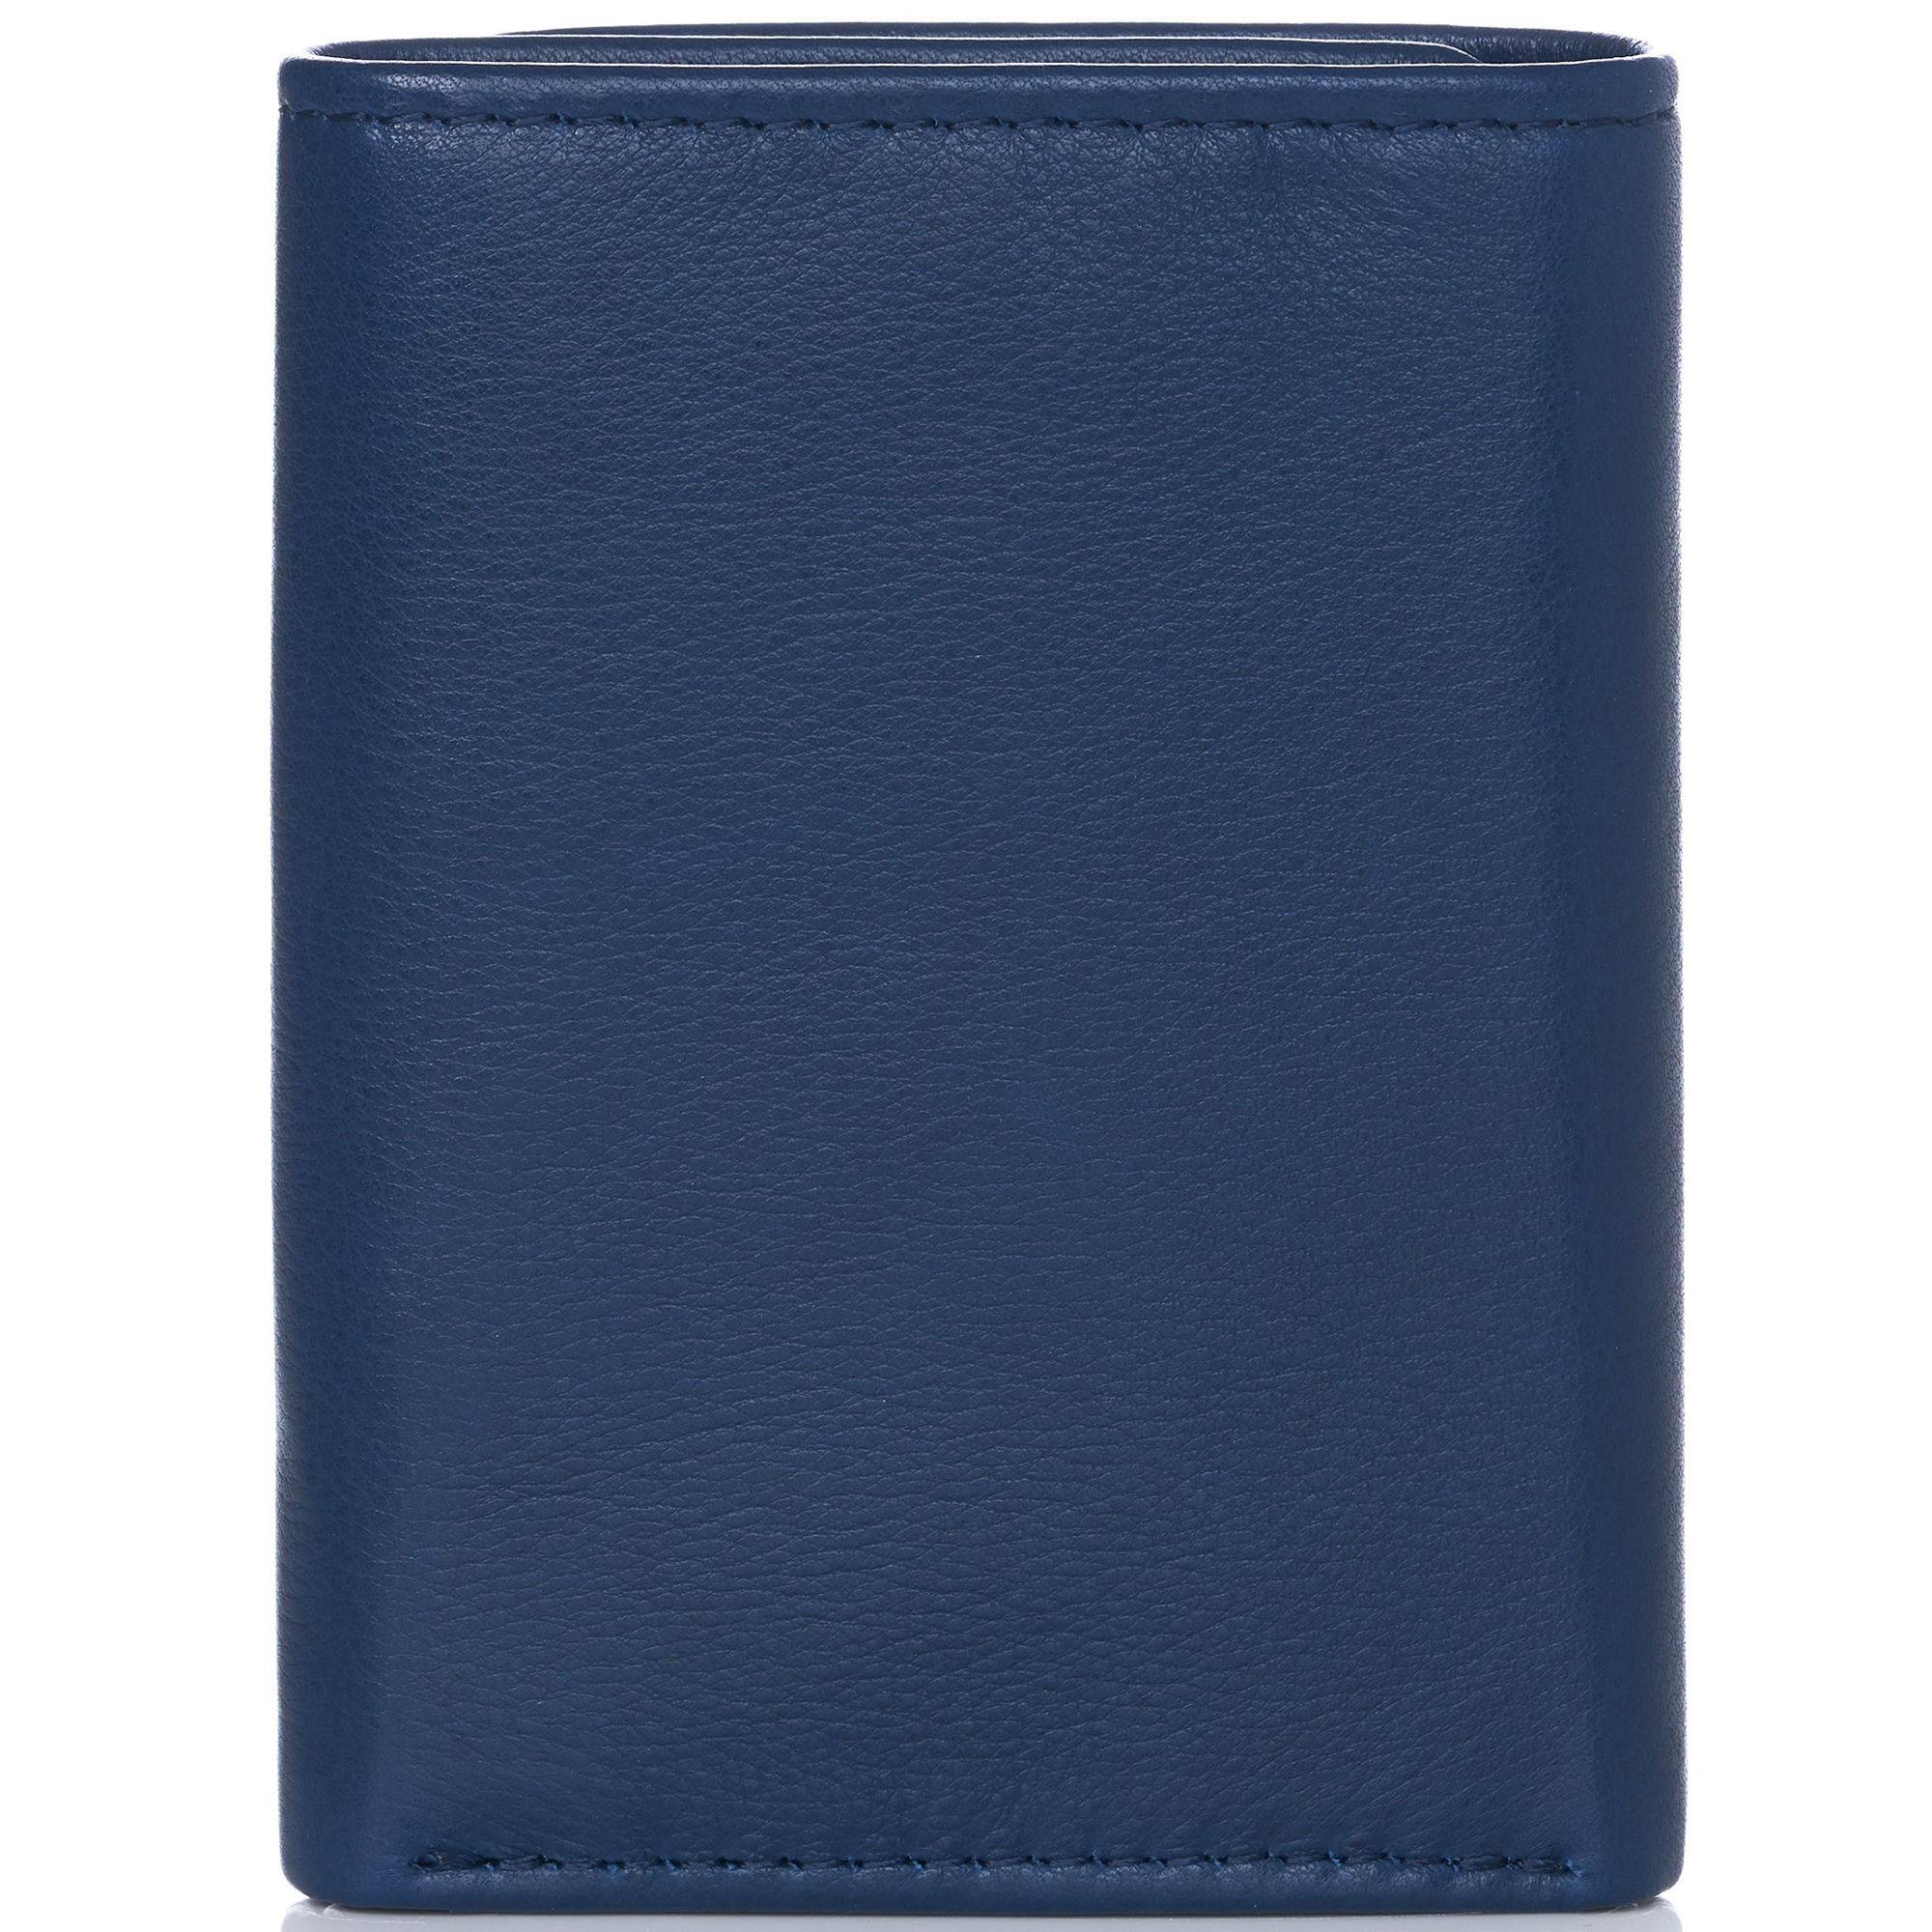 Alpine-Swiss-RFID-Mens-Wallet-Deluxe-Capacity-Trifold-With-Divided-Bill-Section thumbnail 92